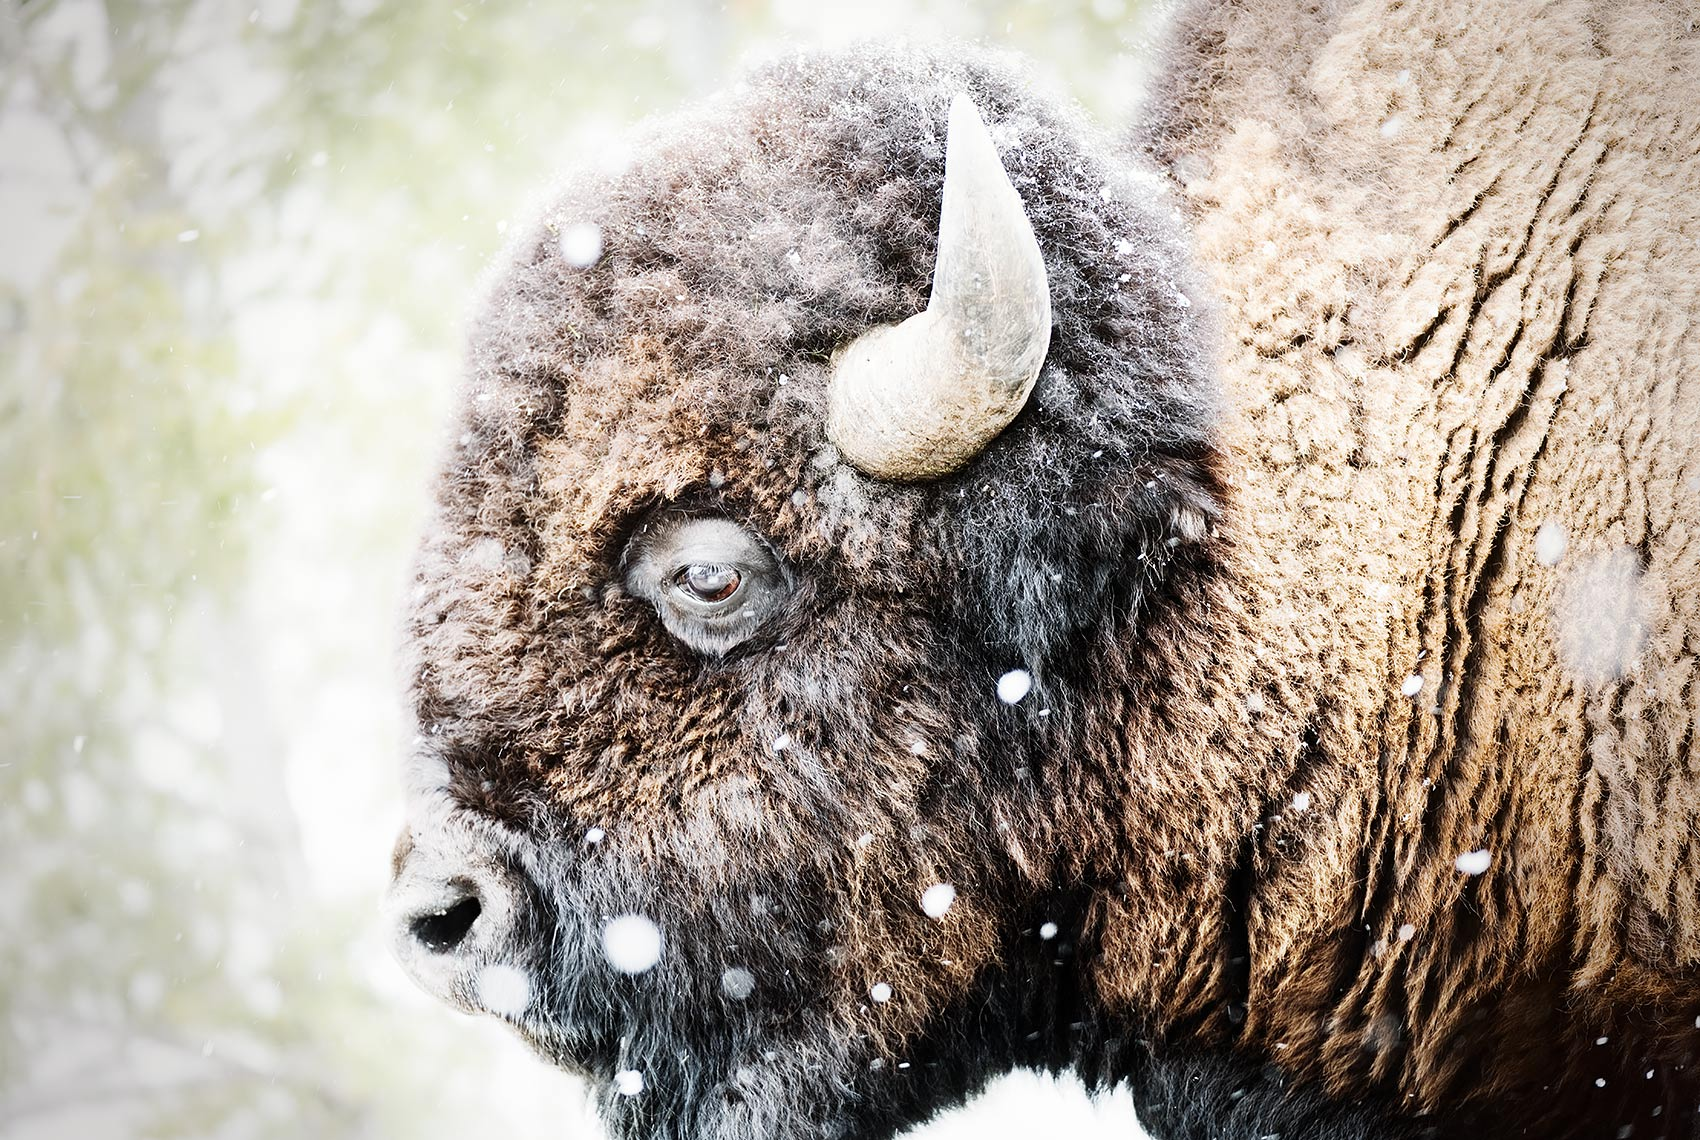 Profile of a Bison